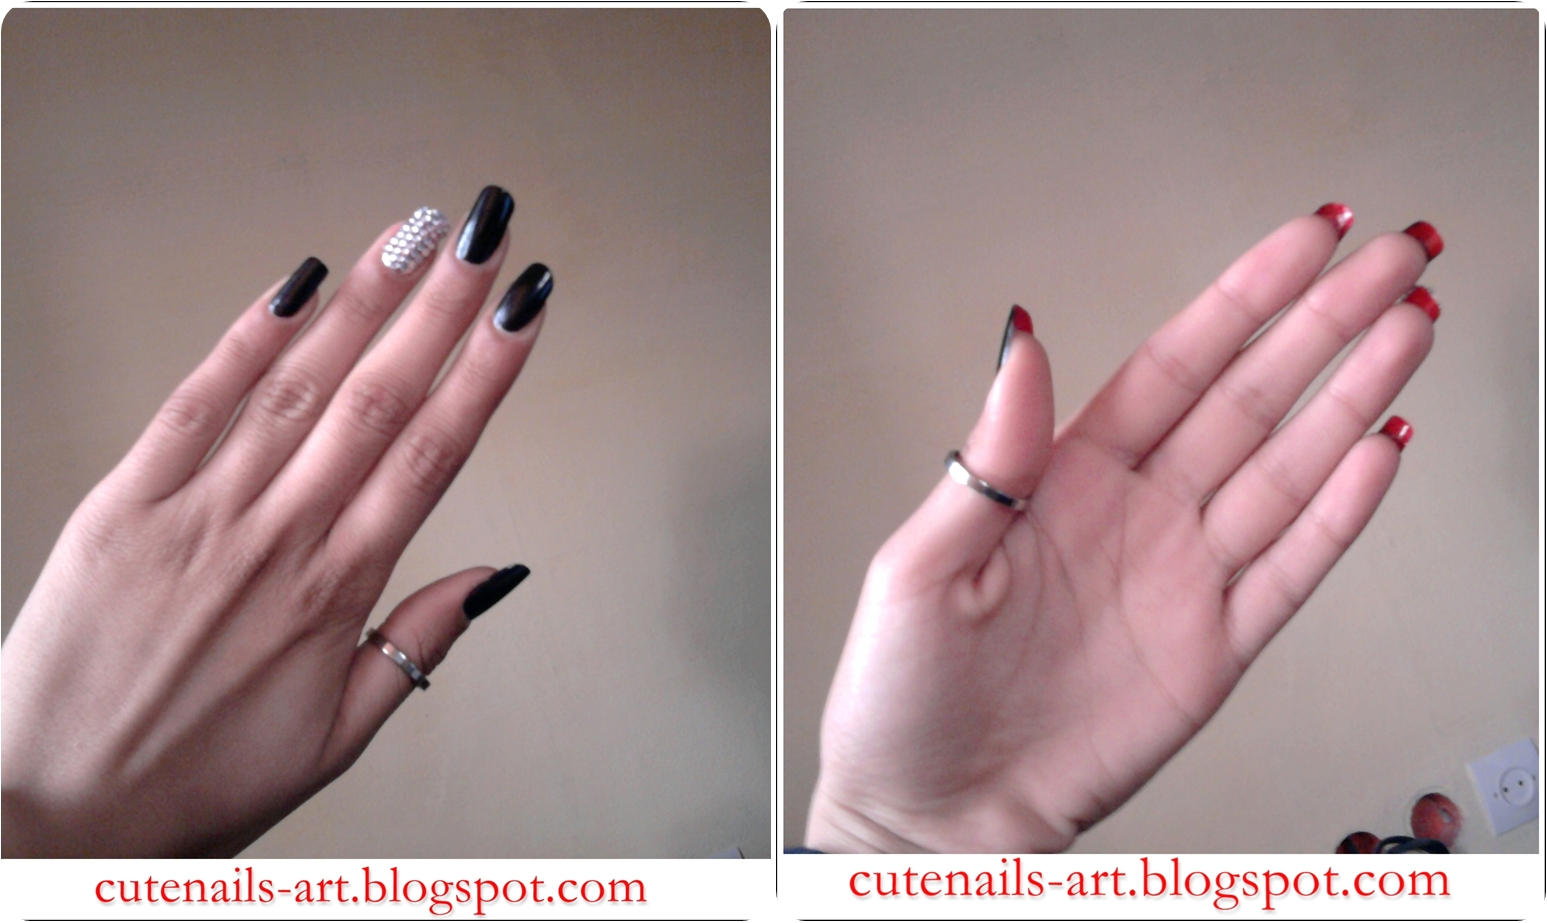 Cutenails art fashion nails louboutin inspired nail art cutenails art prinsesfo Choice Image